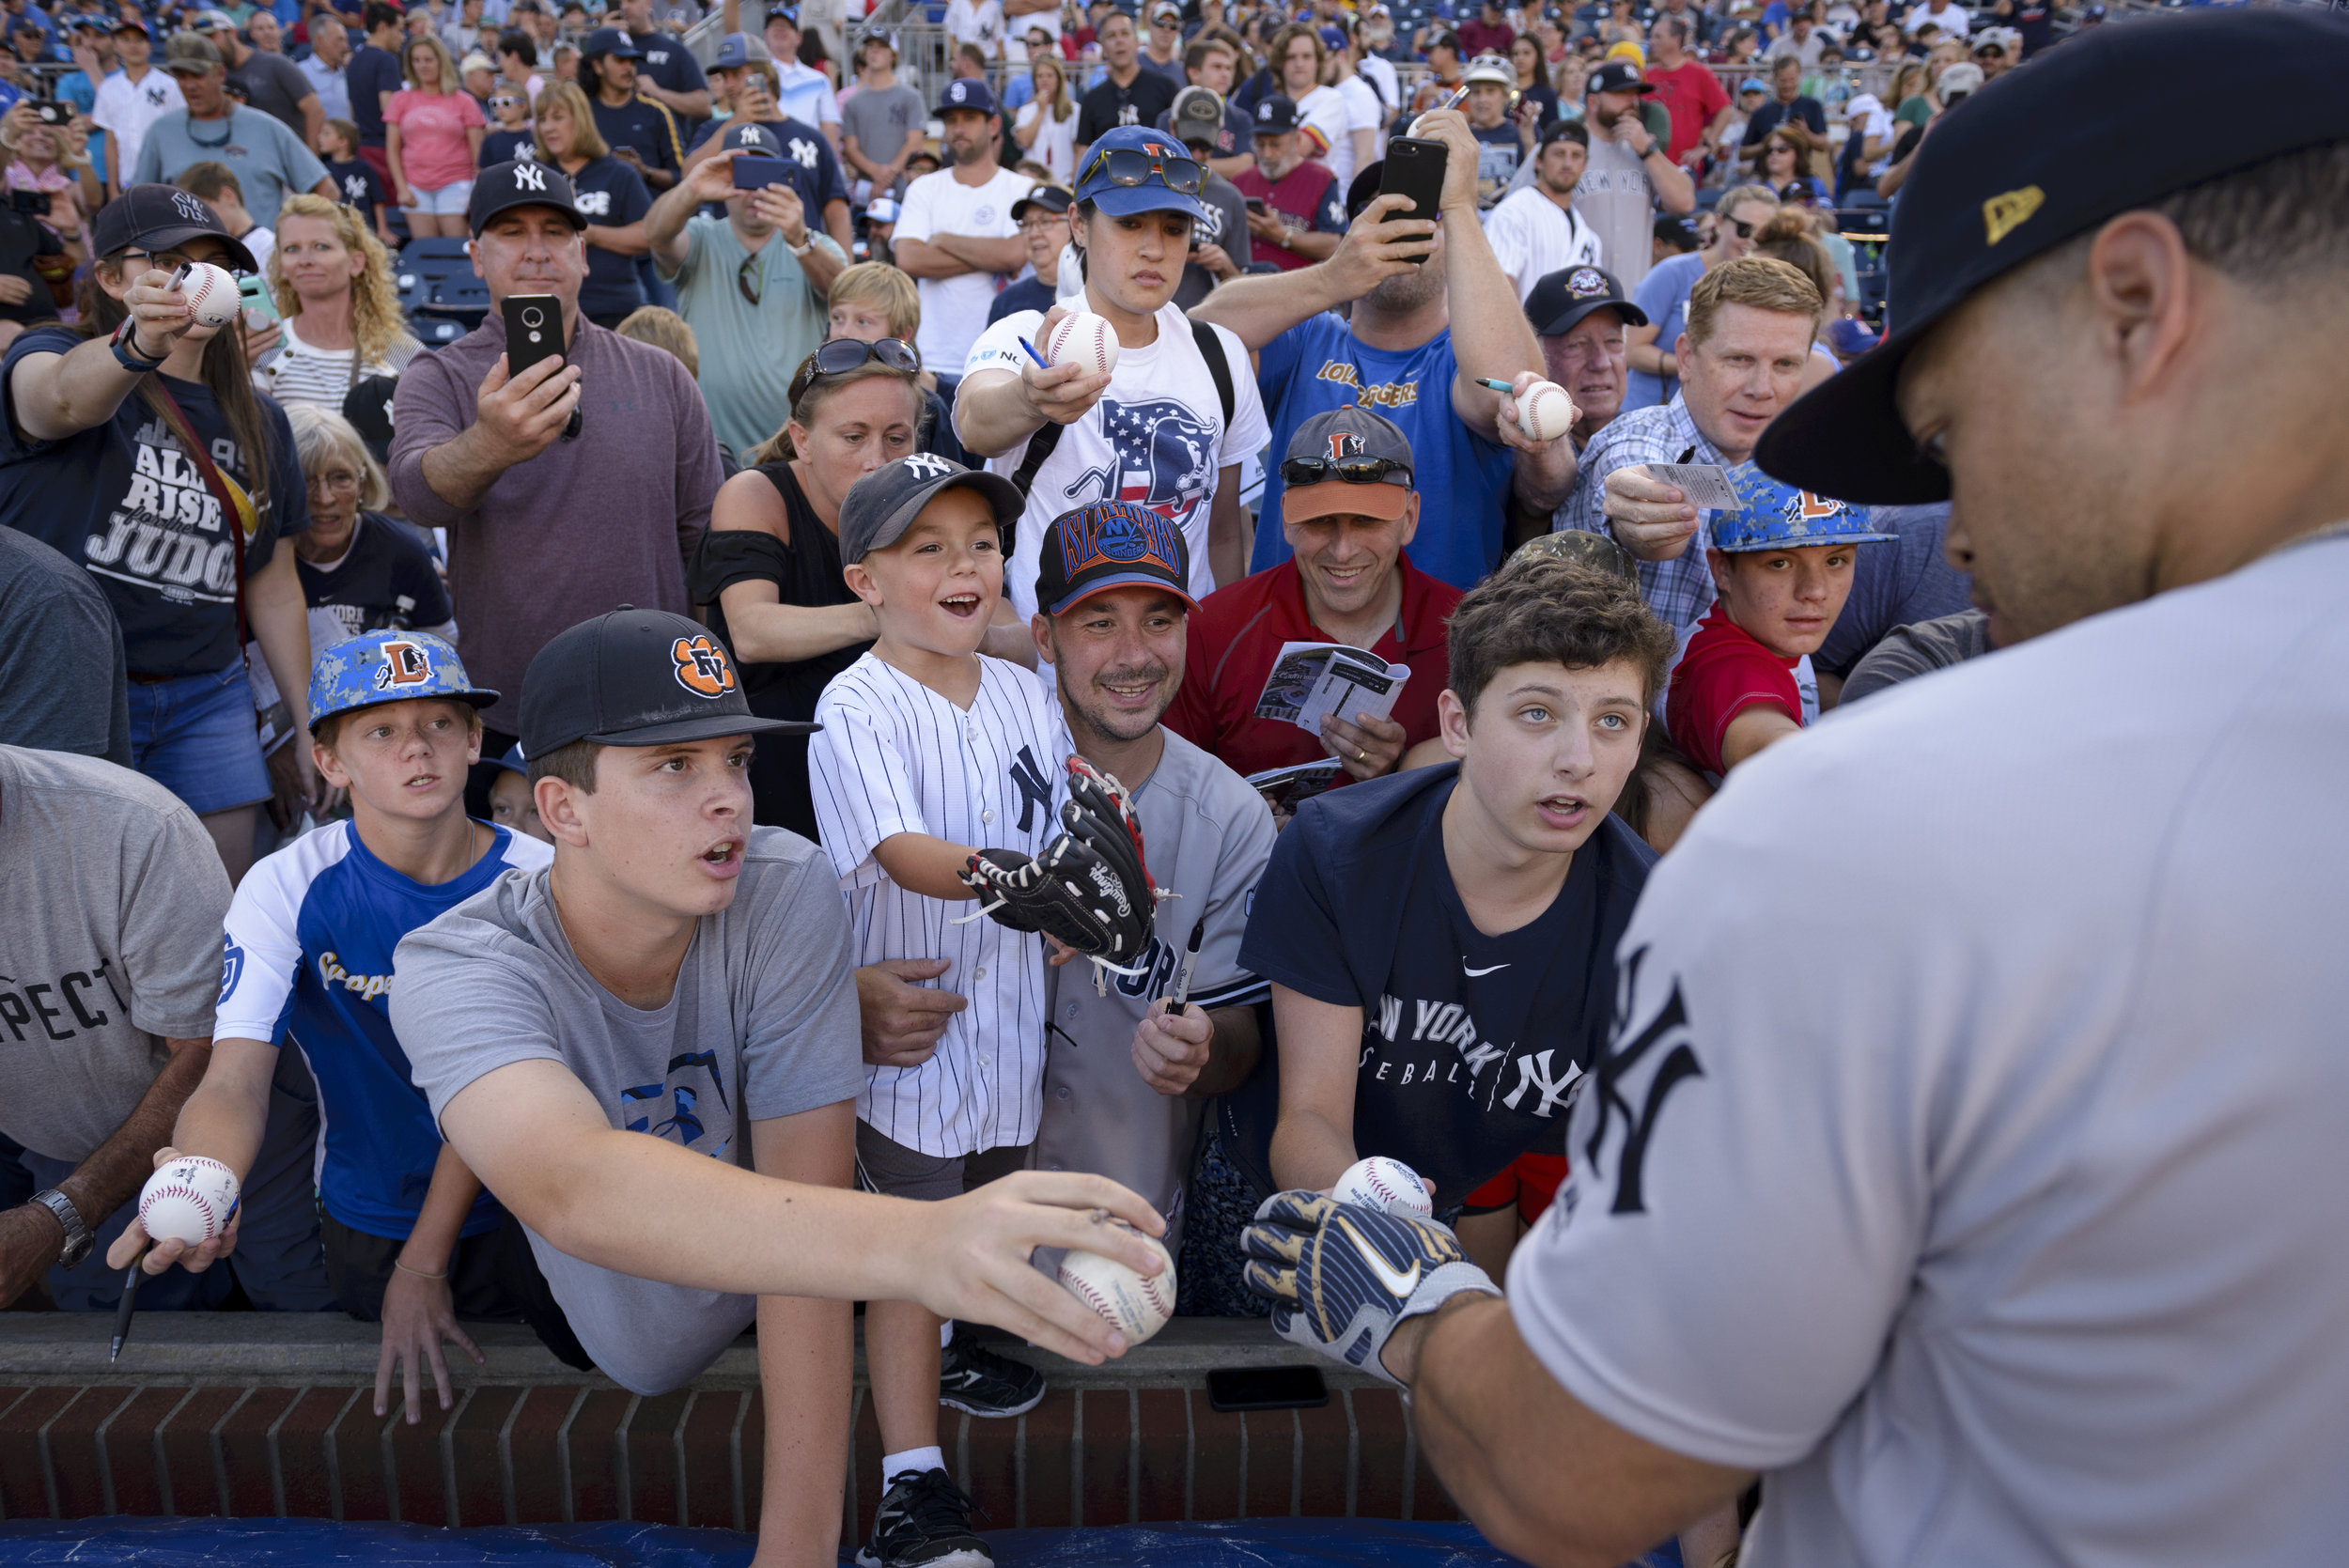 New York Yankees outfielder Giancarlo Stanton signs autographs after batting practice with the Wilkes-Barre RailRiders, the Yankees' Triple-A affiliate, on June 14, 2019 at Durham Bulls Athletic Park in Durham, NC.